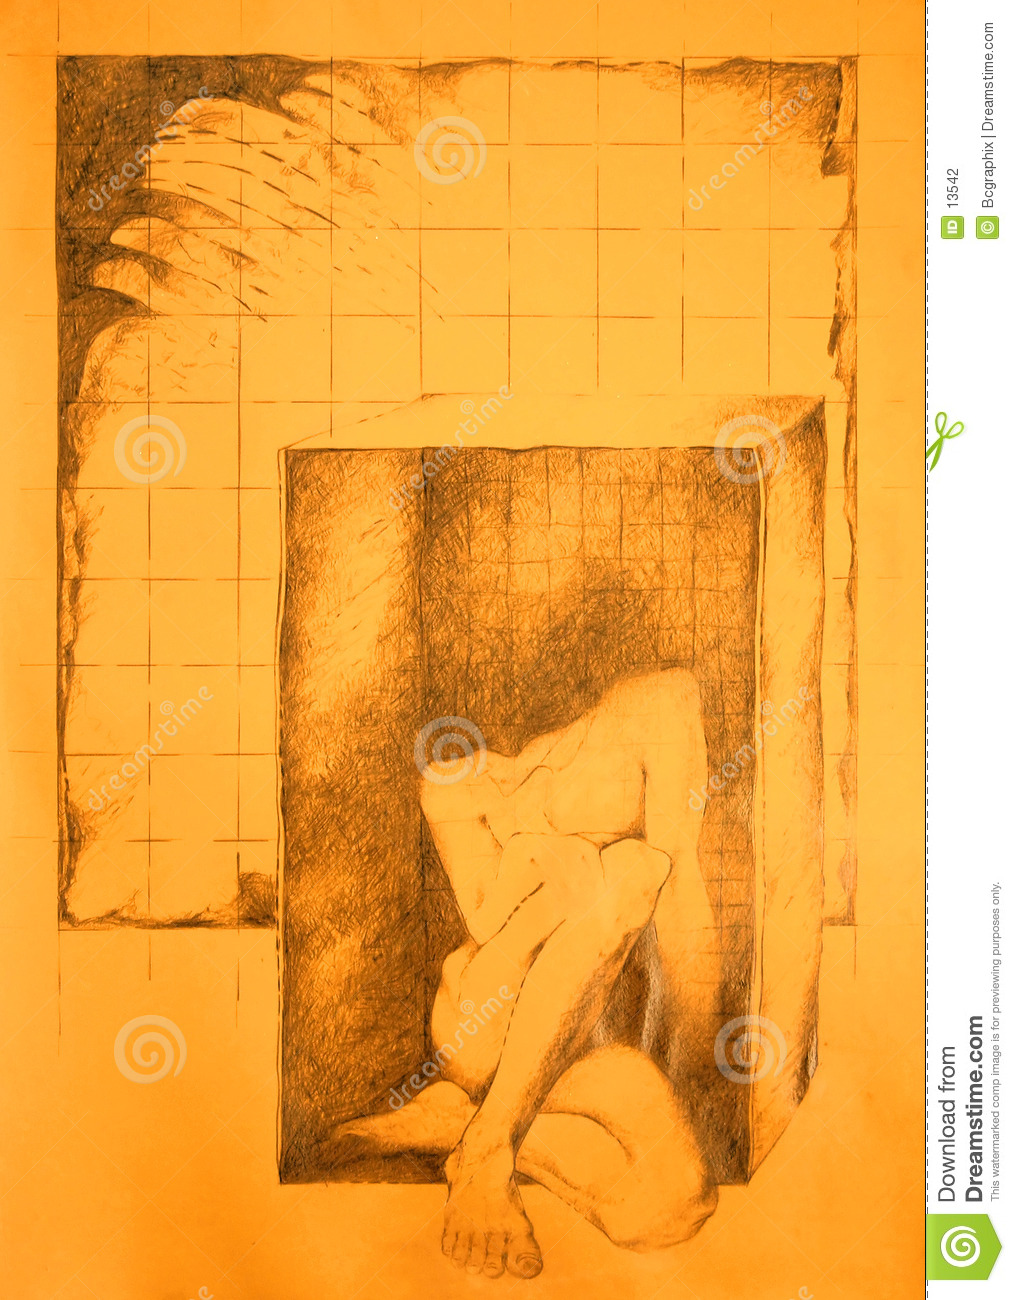 Male nude trapped in a box